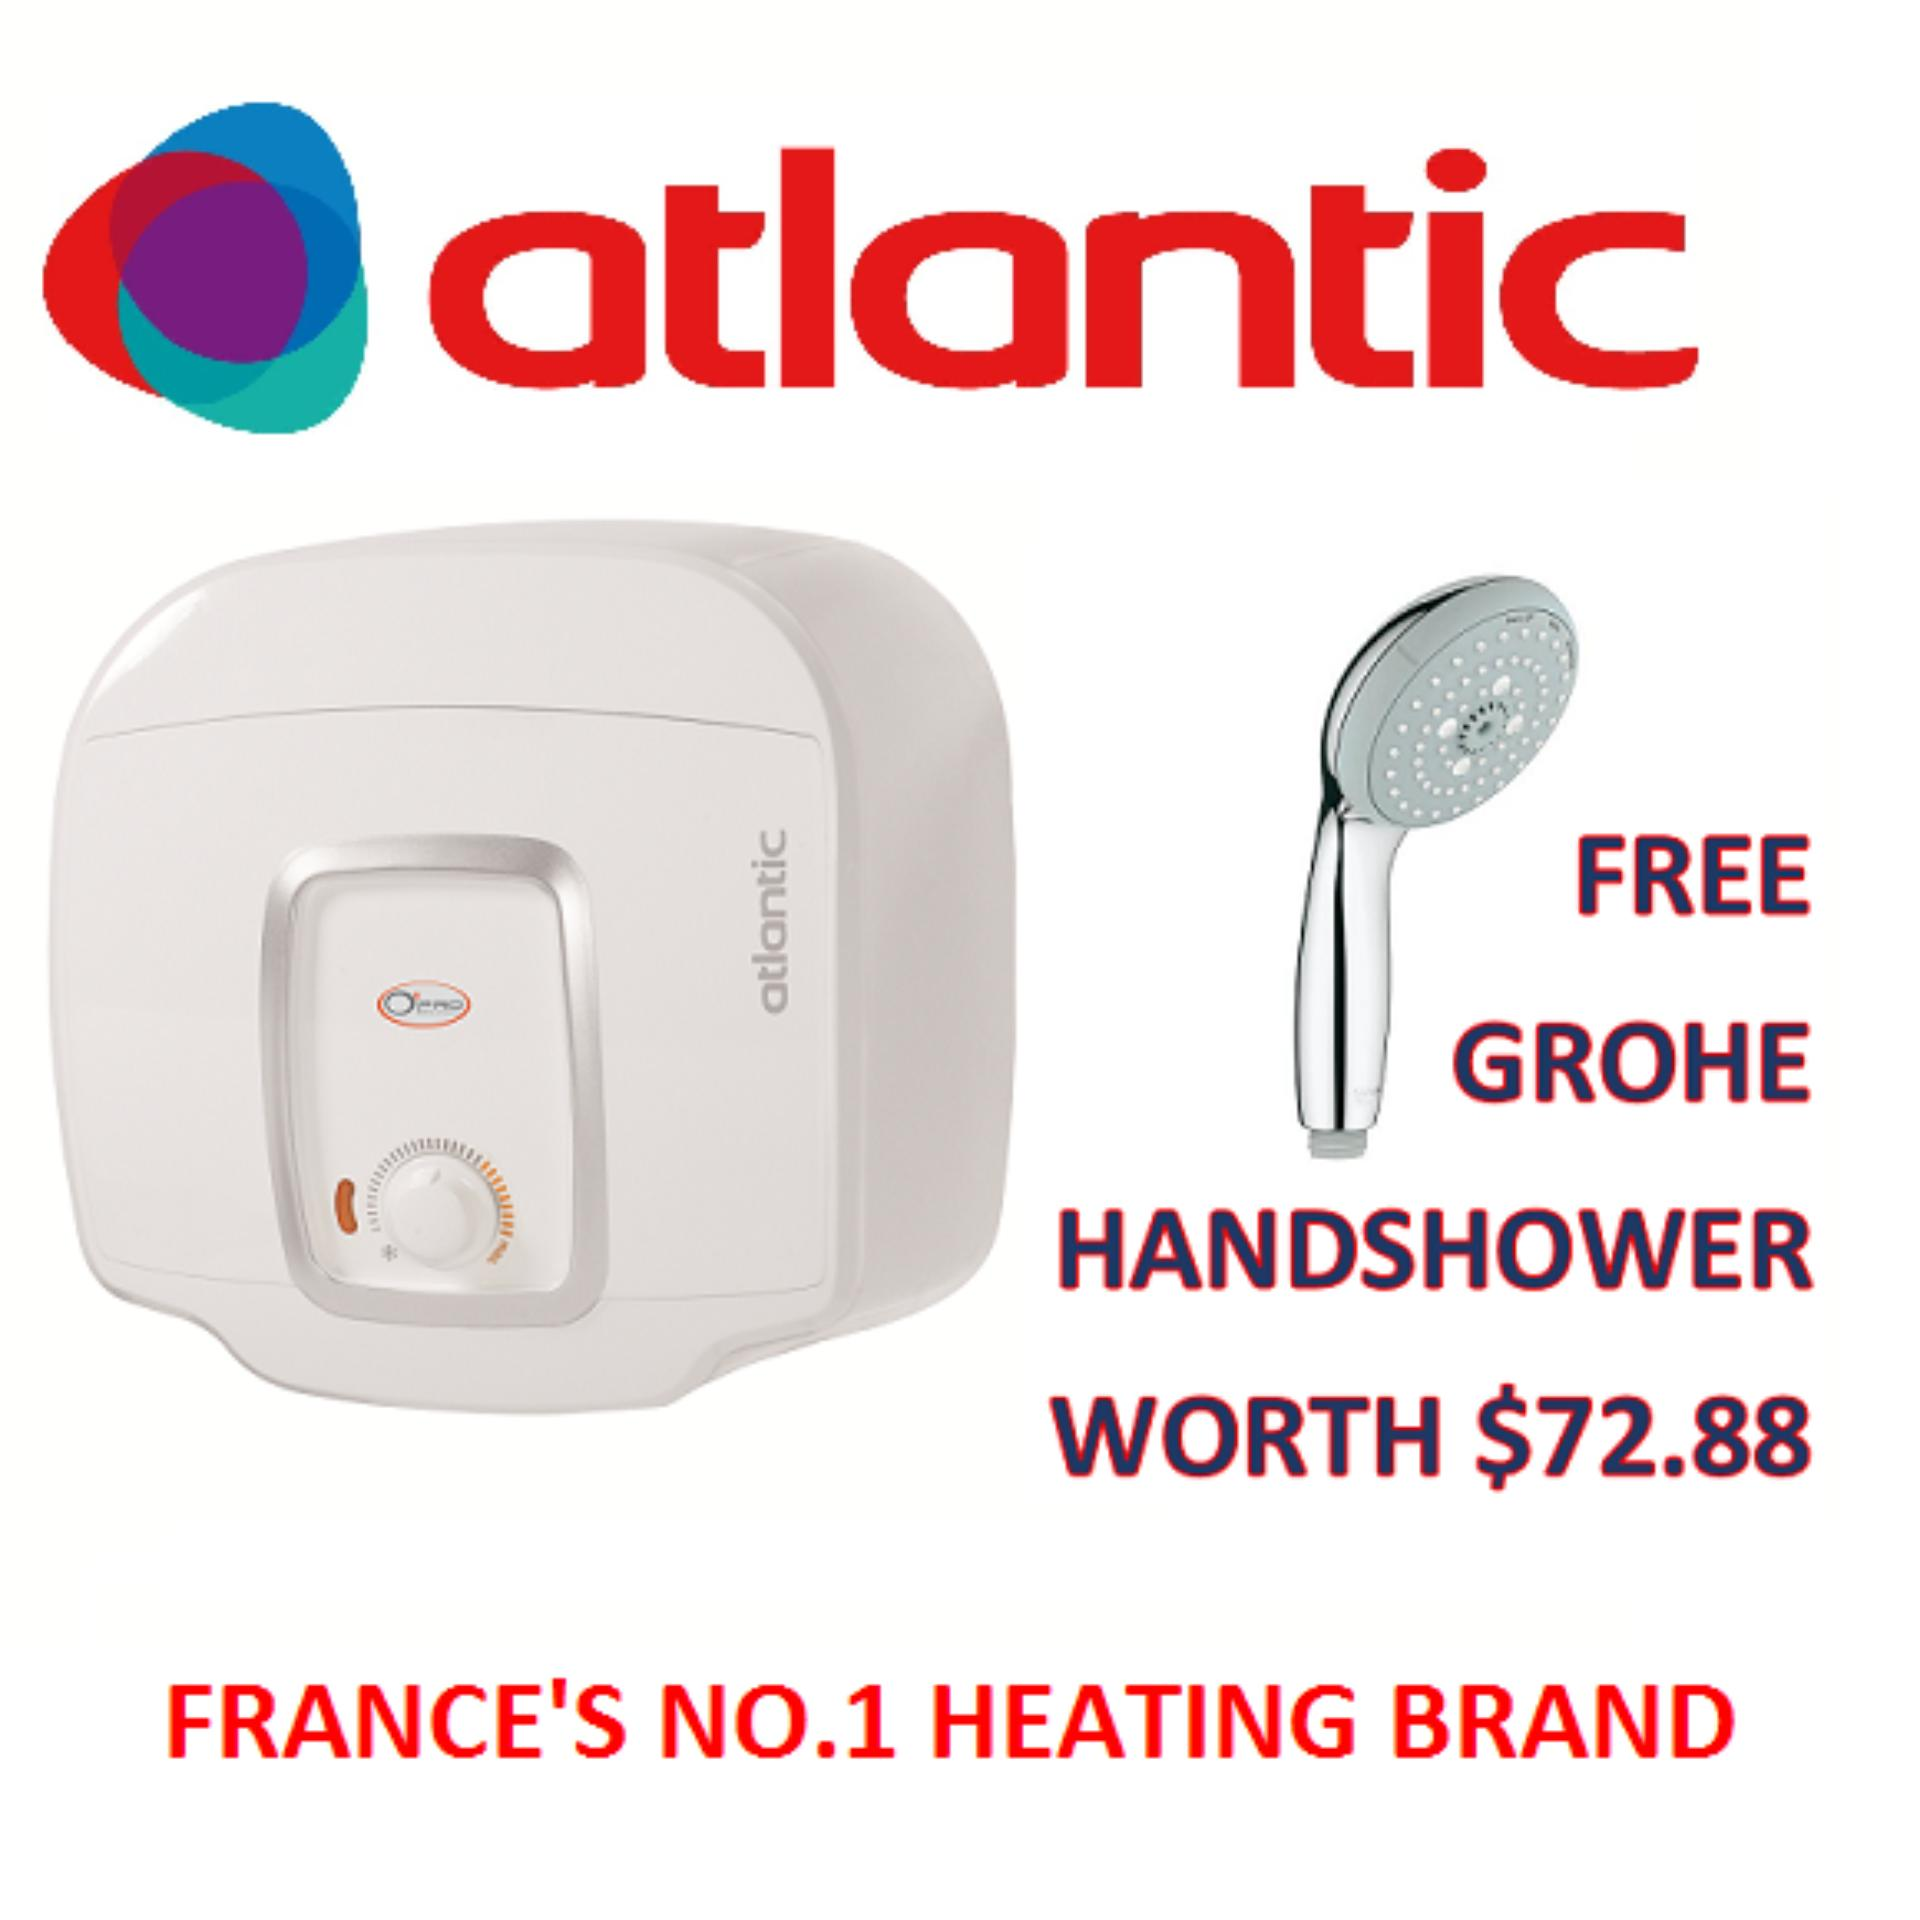 Atlantic Swh15Am 15L Storage Tank Heater With Free Grohe Handshower For Sale